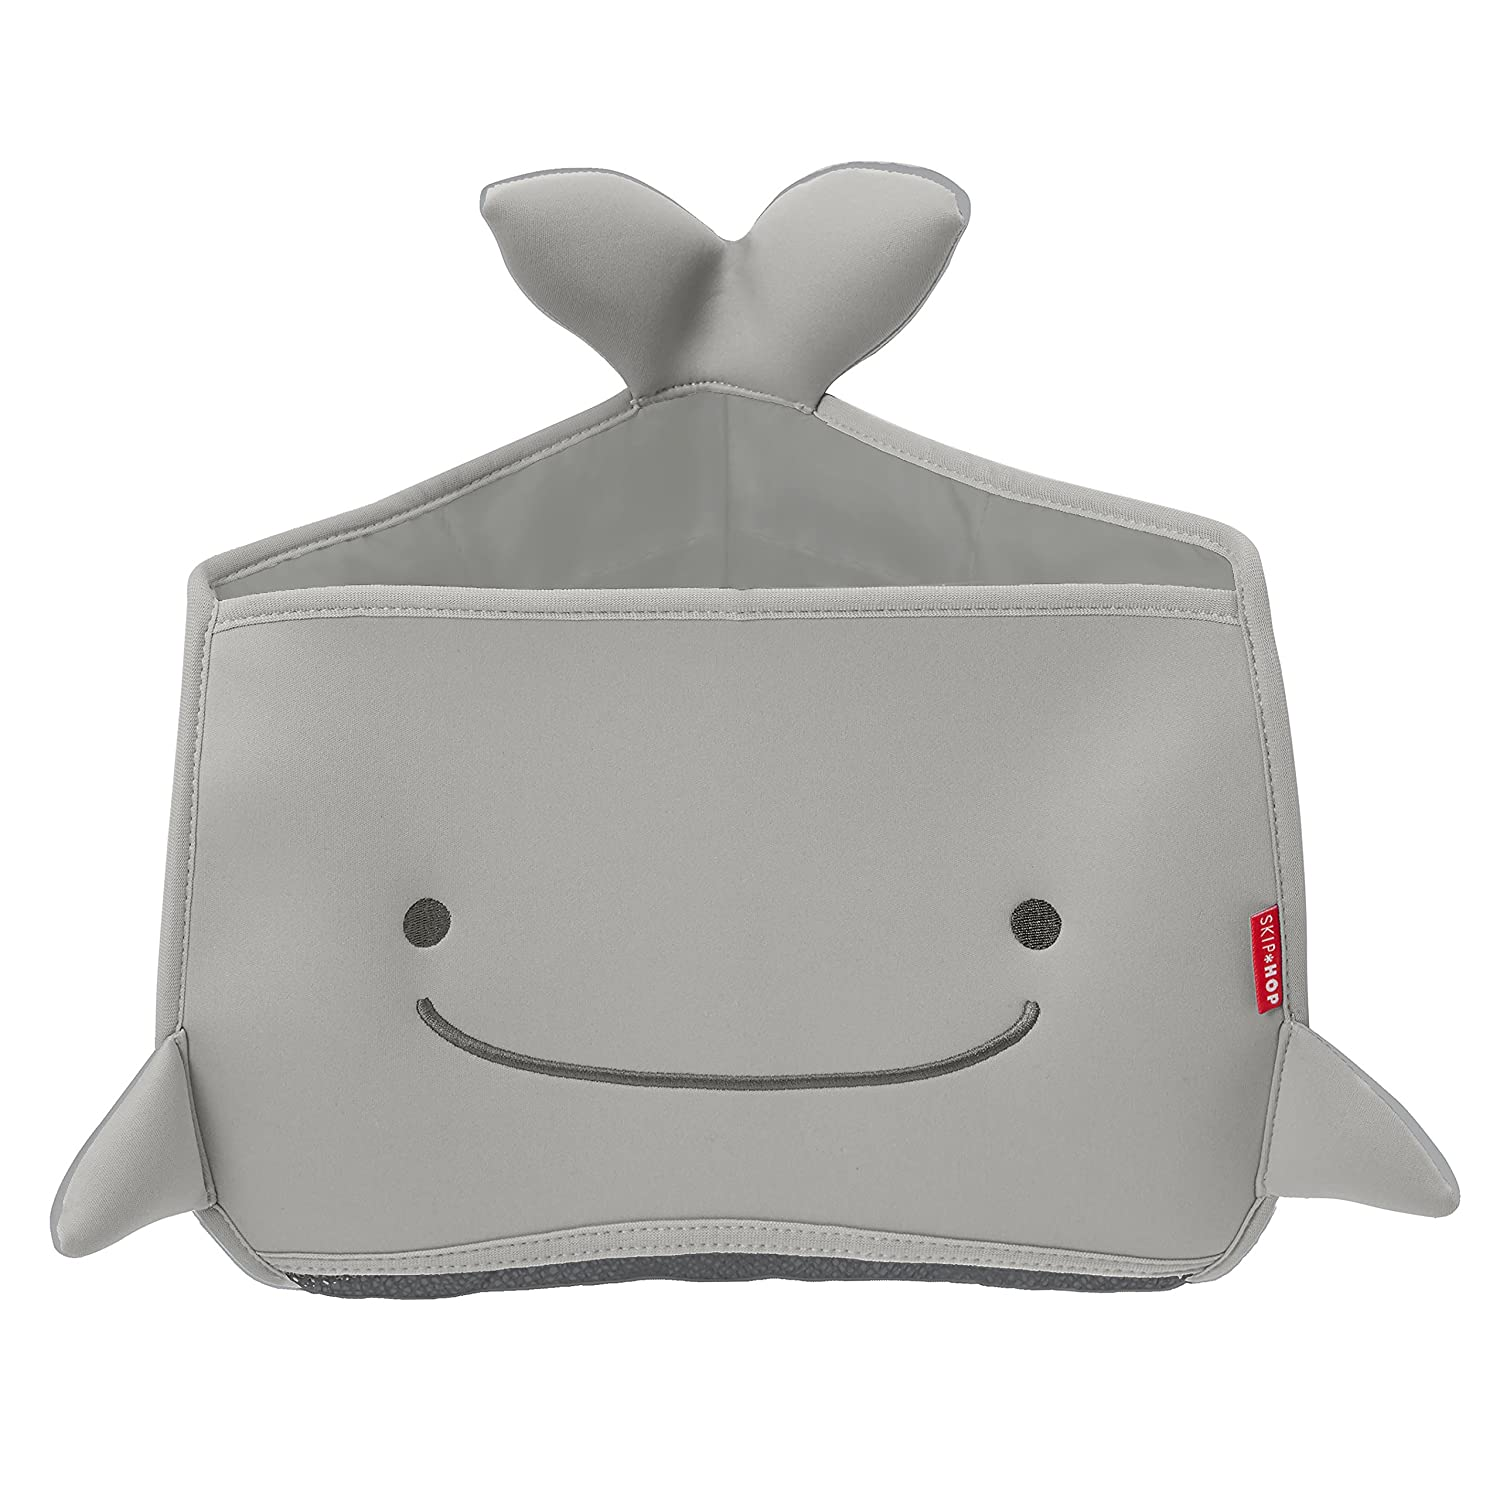 Moby Bath Toy Organizer for Babies and Toddlers, Corner Bath Tub Storage, Grey Skip Hop 235058